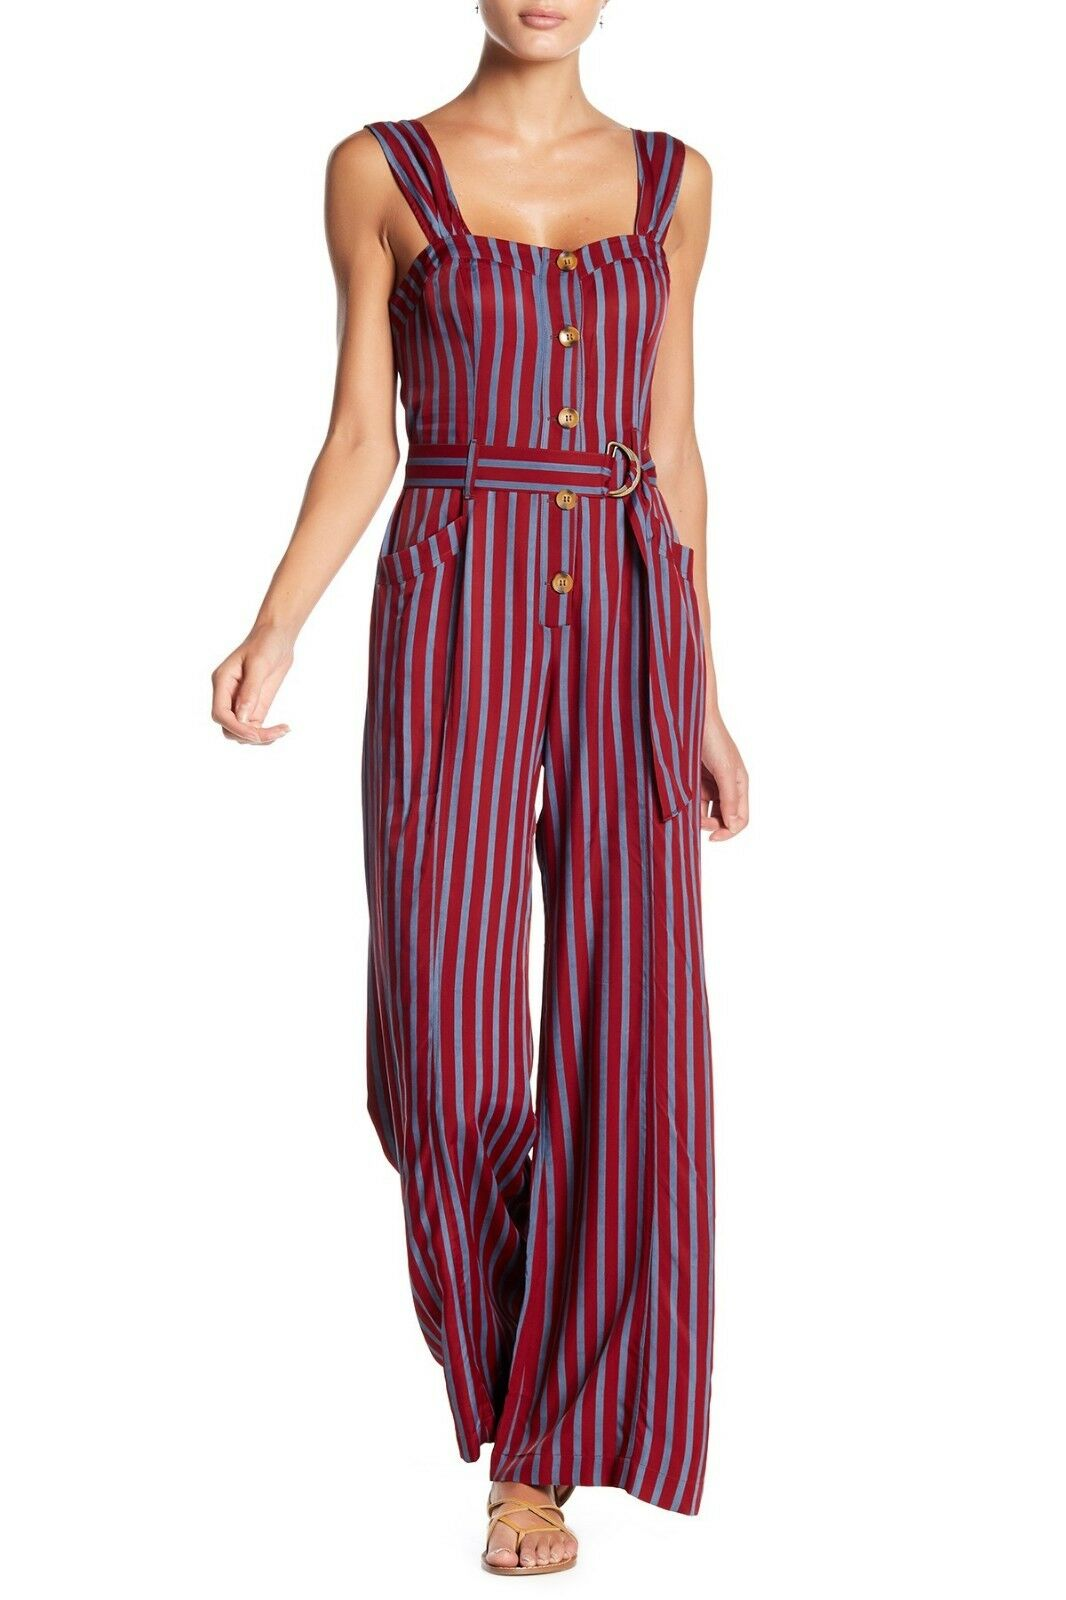 FREE PEOPLE Wine Red bluee Pin-Stripe CITY GIRL Satin Twill Wide Leg Jumpsuit 2